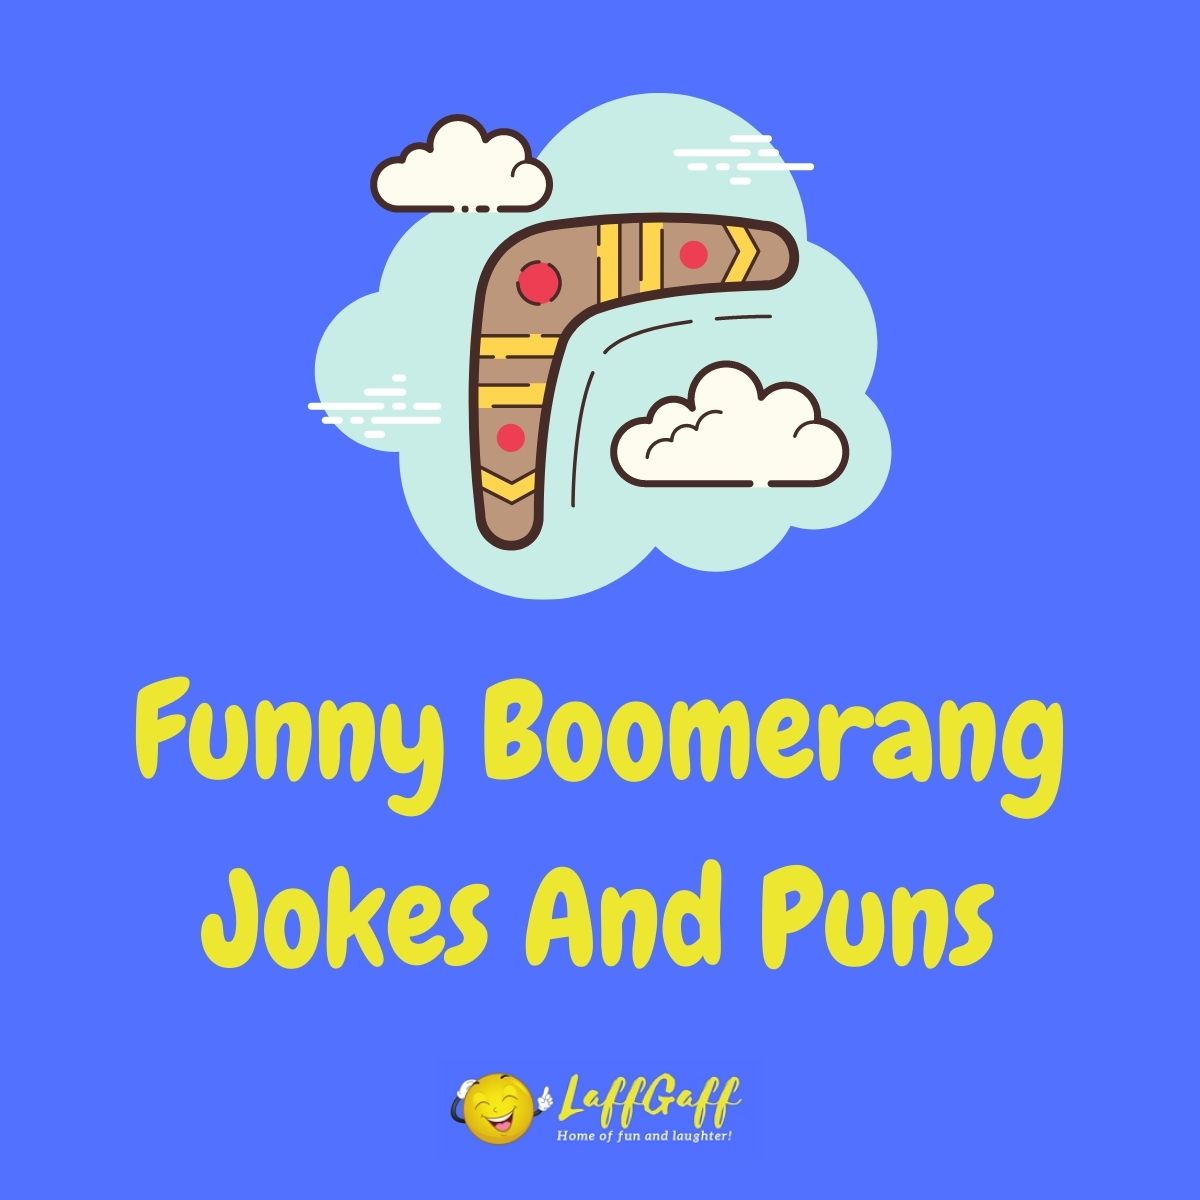 Featured image for a page of funny boomerang jokes and puns.